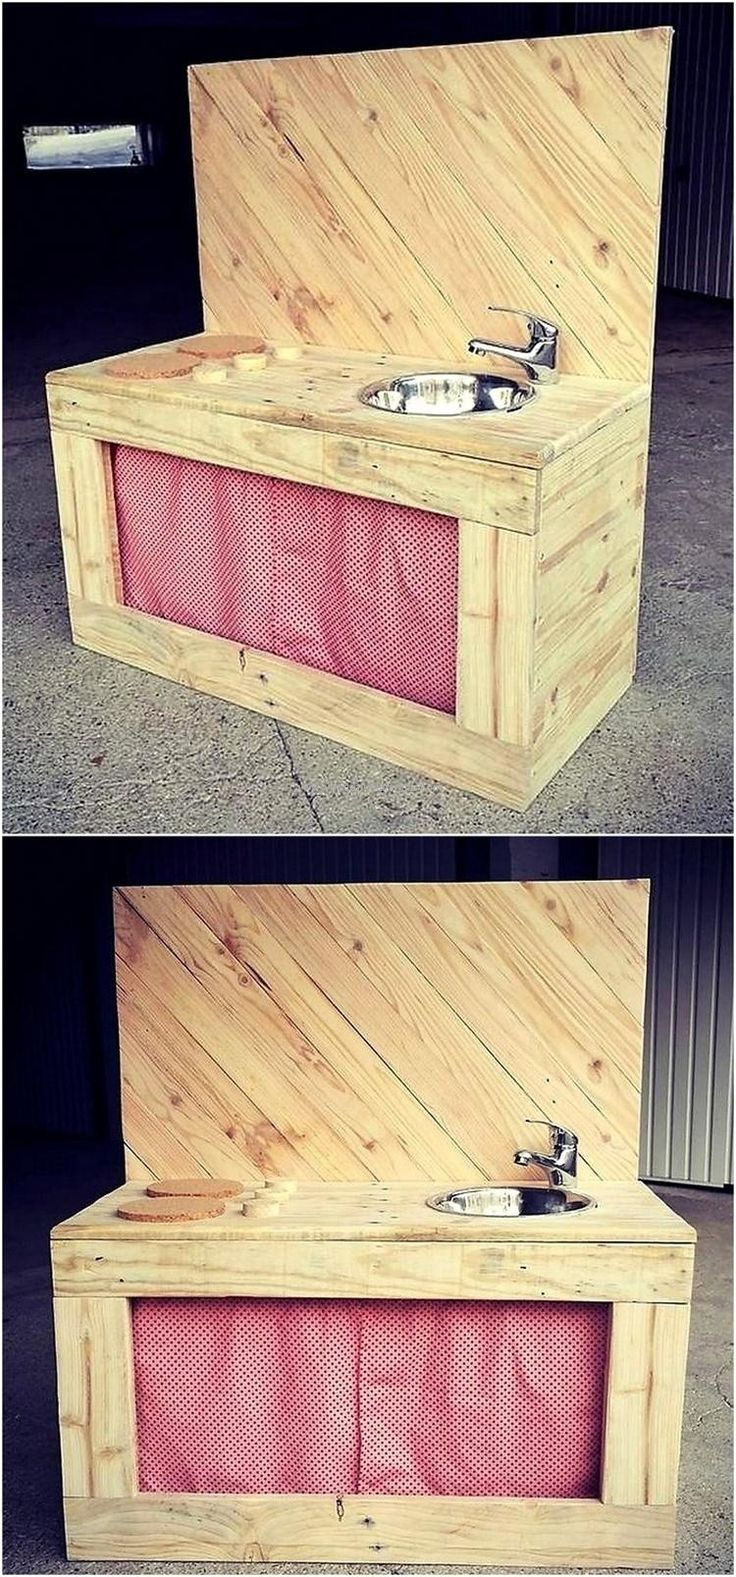 Mud kitchen upcycled pallet mud kitchen pallet kitchen counter with - 961 Best 1001 Pallets Images On Pinterest 1001 Pallets Pallet Ideas And Pallet Furniture